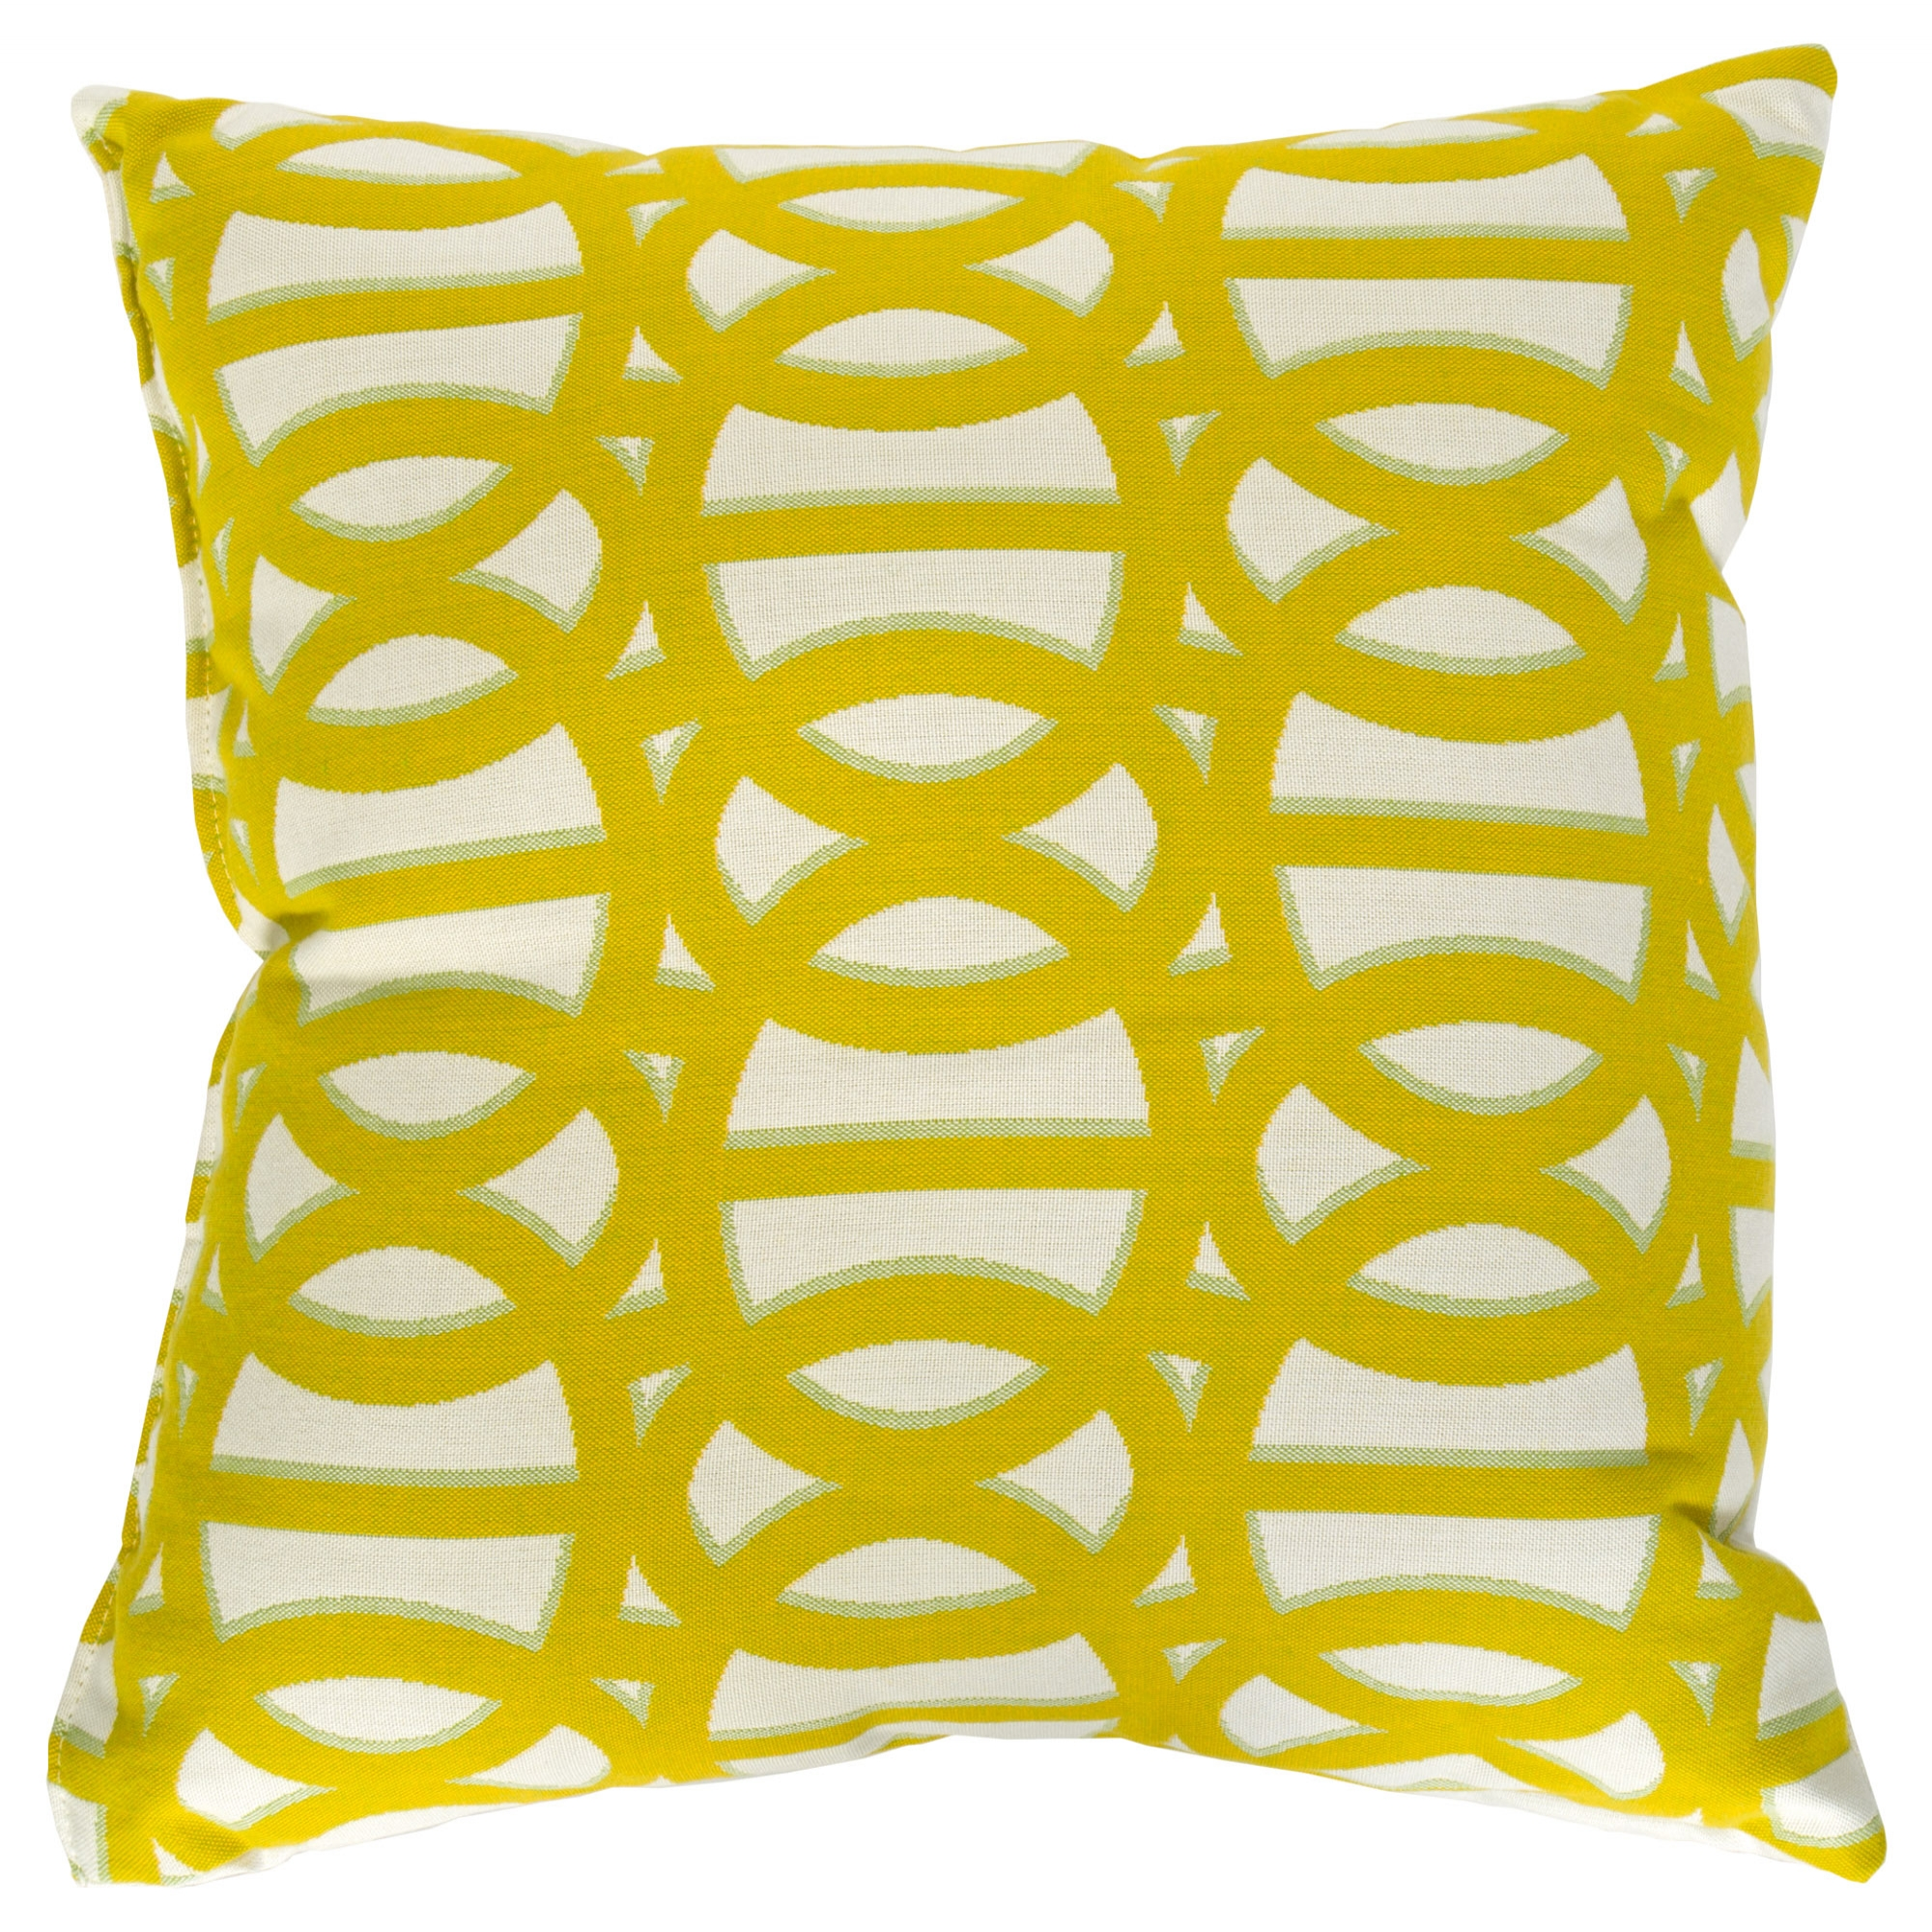 Awesome outdoor throw pillows for furniture accessories with cheap outdoor throw pillows